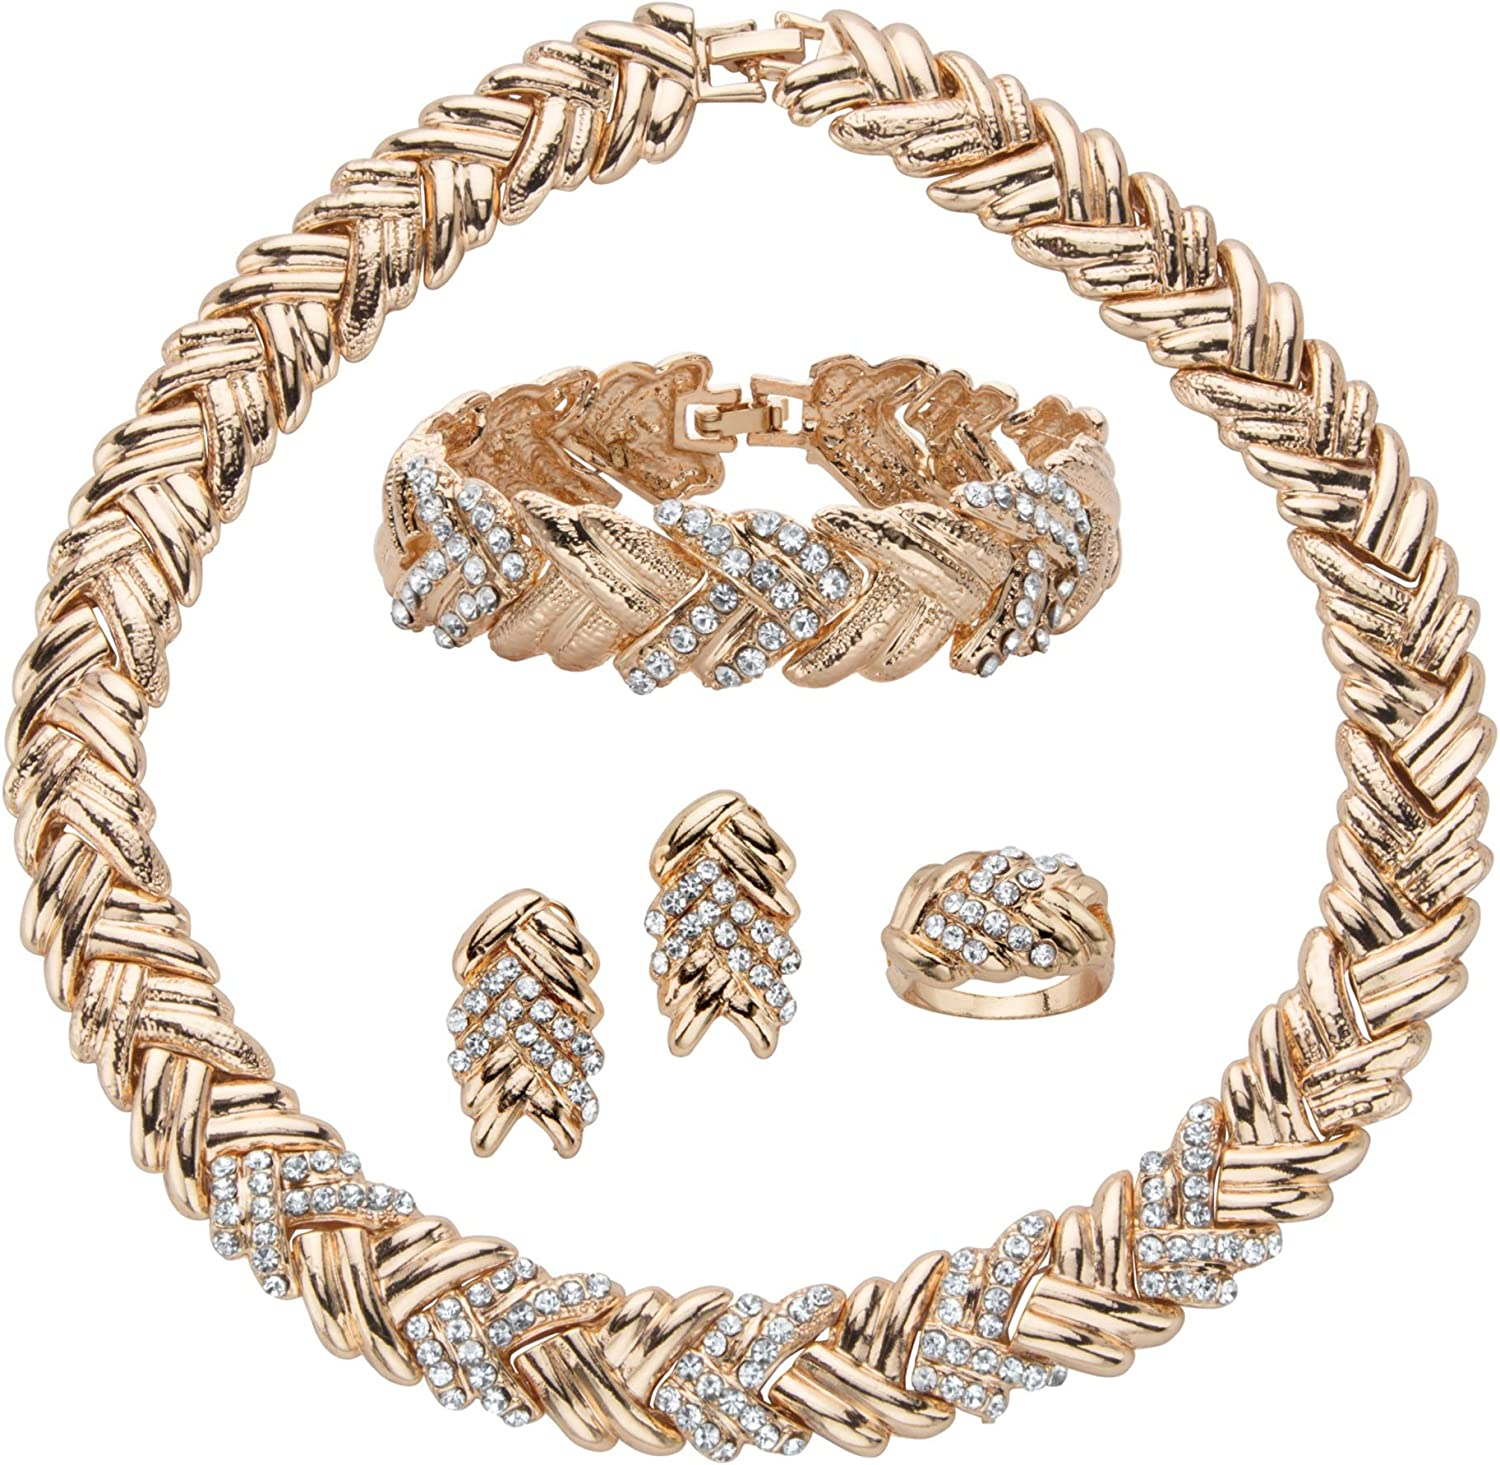 Palm Beach Jewelry Goldtone Round Crystal Braided Necklace (17.5mm), Earring, Bracelet and Ring Set, 18 inches